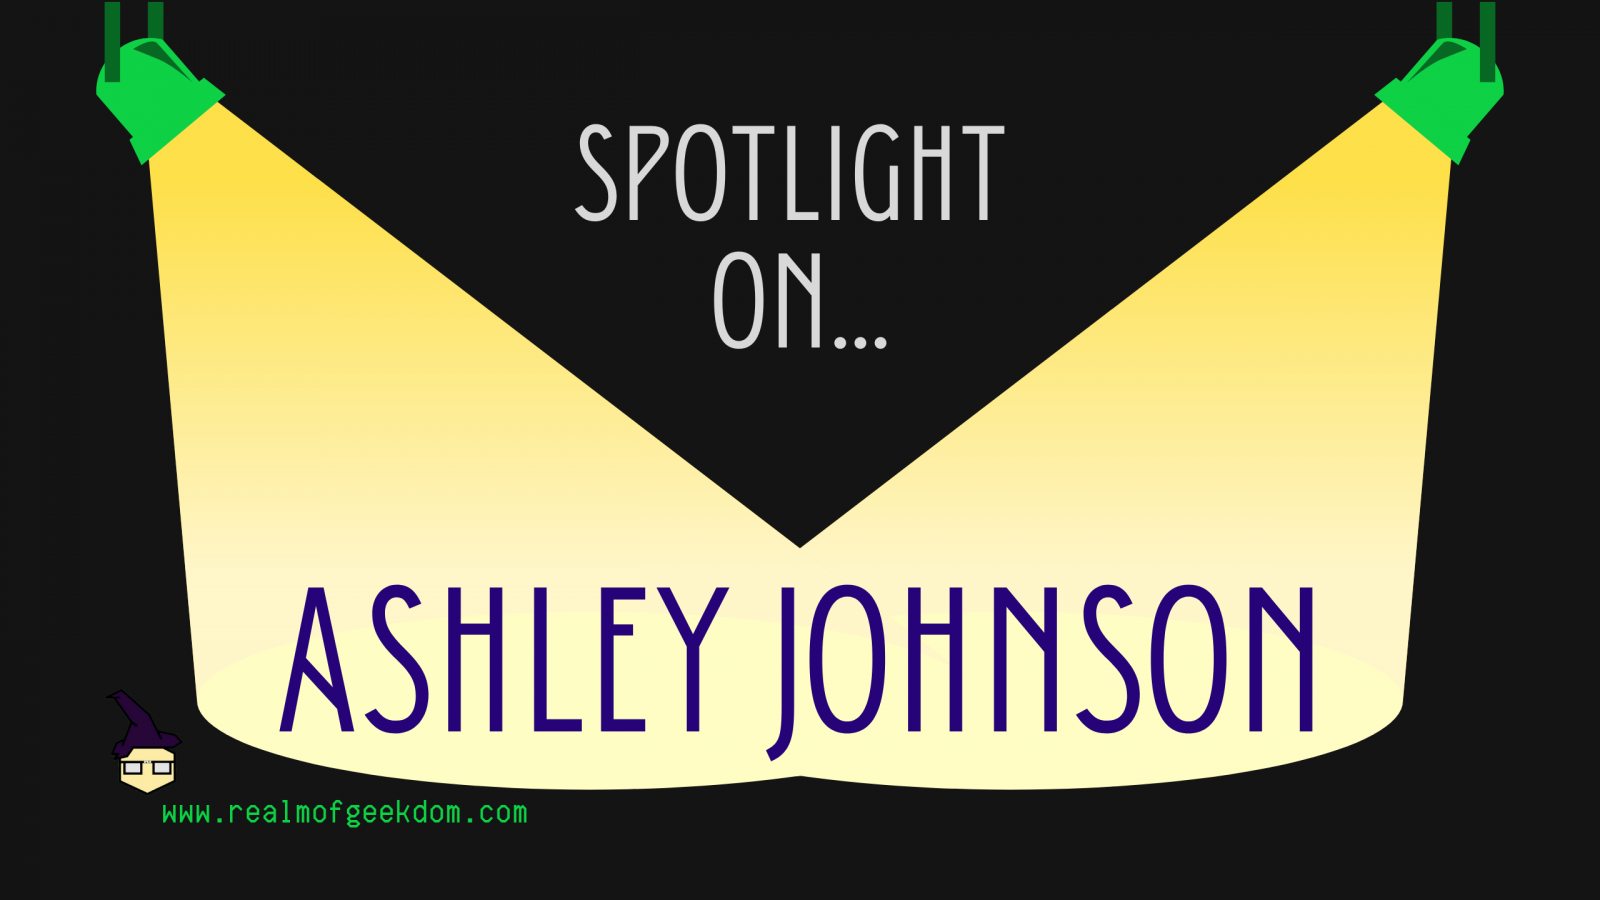 Ashley Johnson birthday spotlight title post